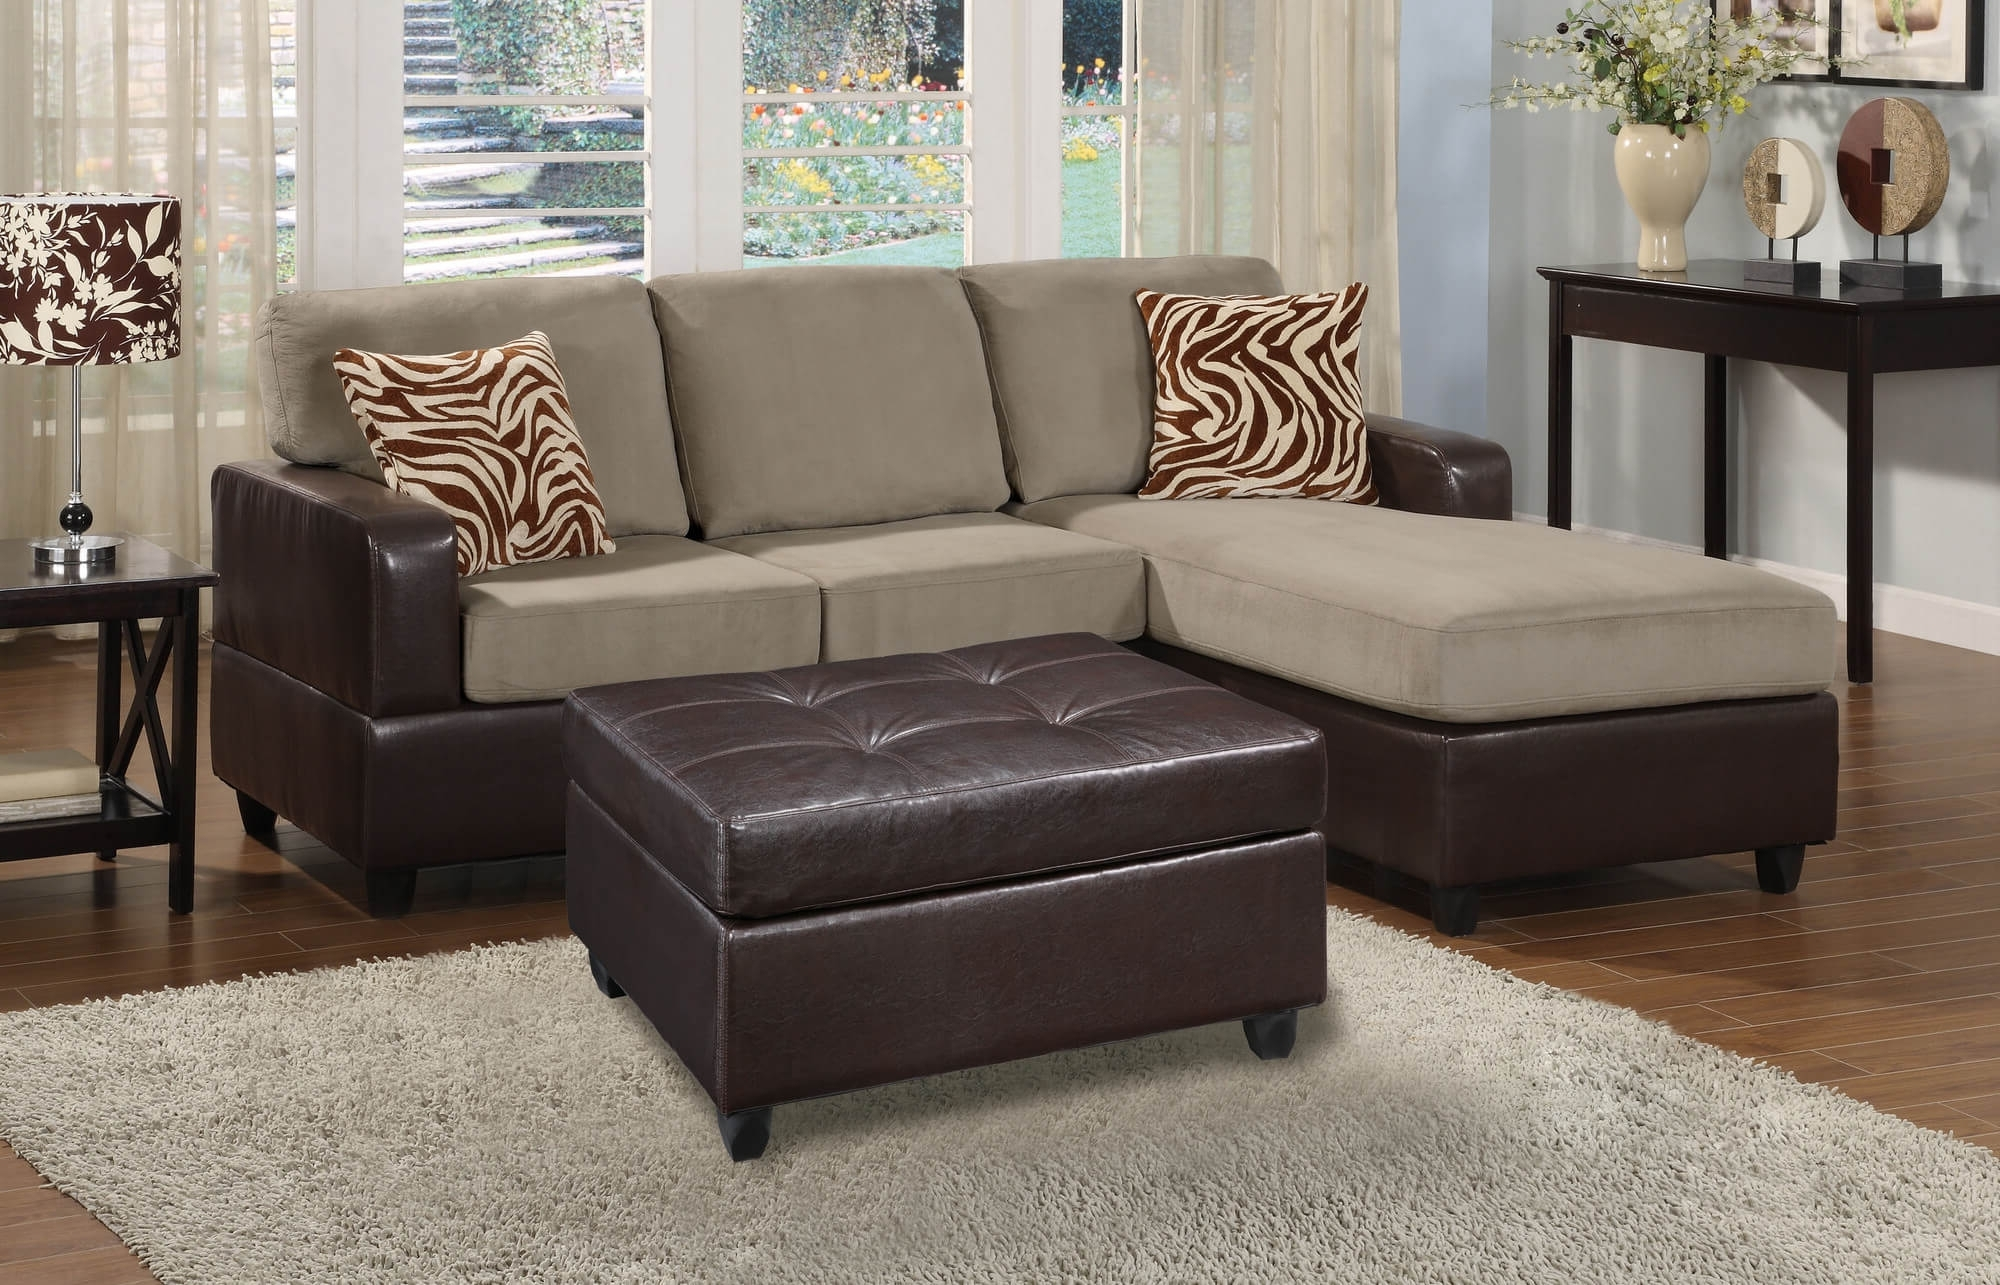 Small Sectional Sofas With Chaise And Ottoman Regarding Most Current 100 Awesome Sectional Sofas Under $1,000 (2018) (View 11 of 20)